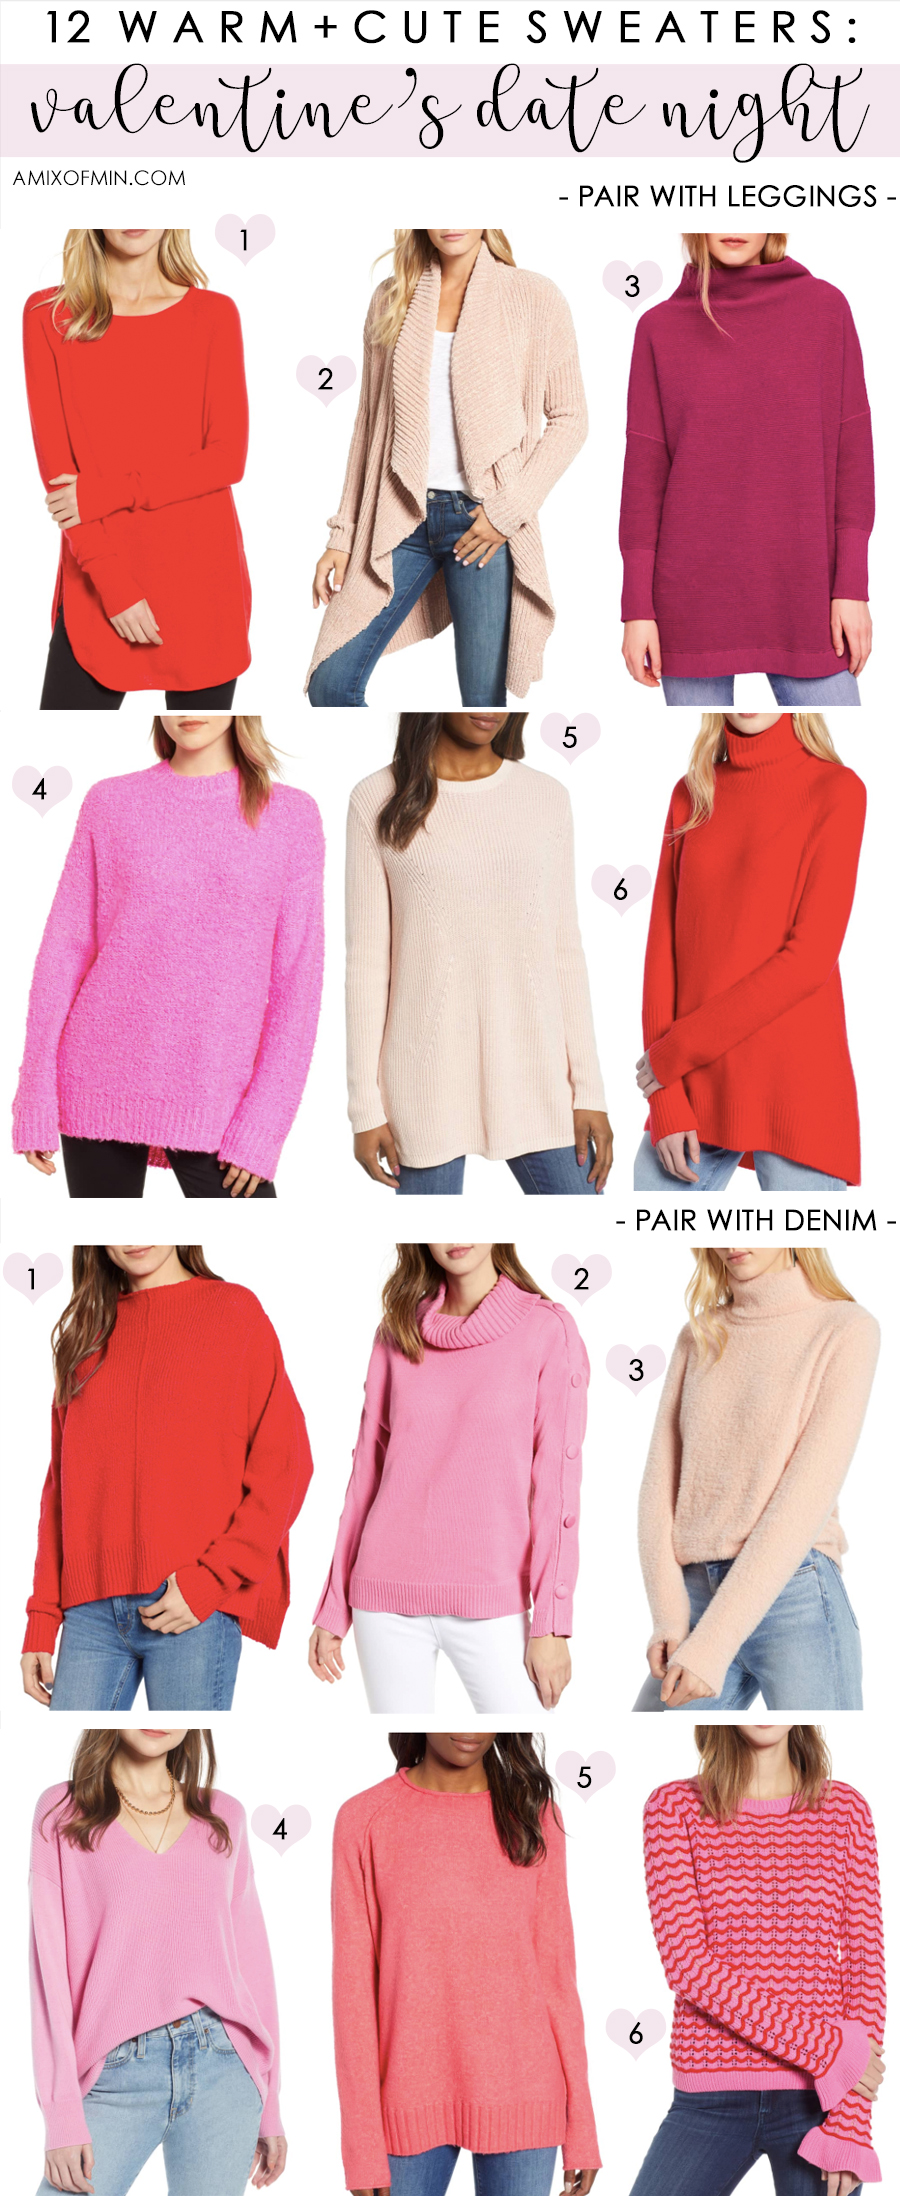 321cf7e4140e 12 Warm + Cute Sweaters for Valentine s Date Night. VALENTINES-DAY-OUTFITS- IDEAS-900